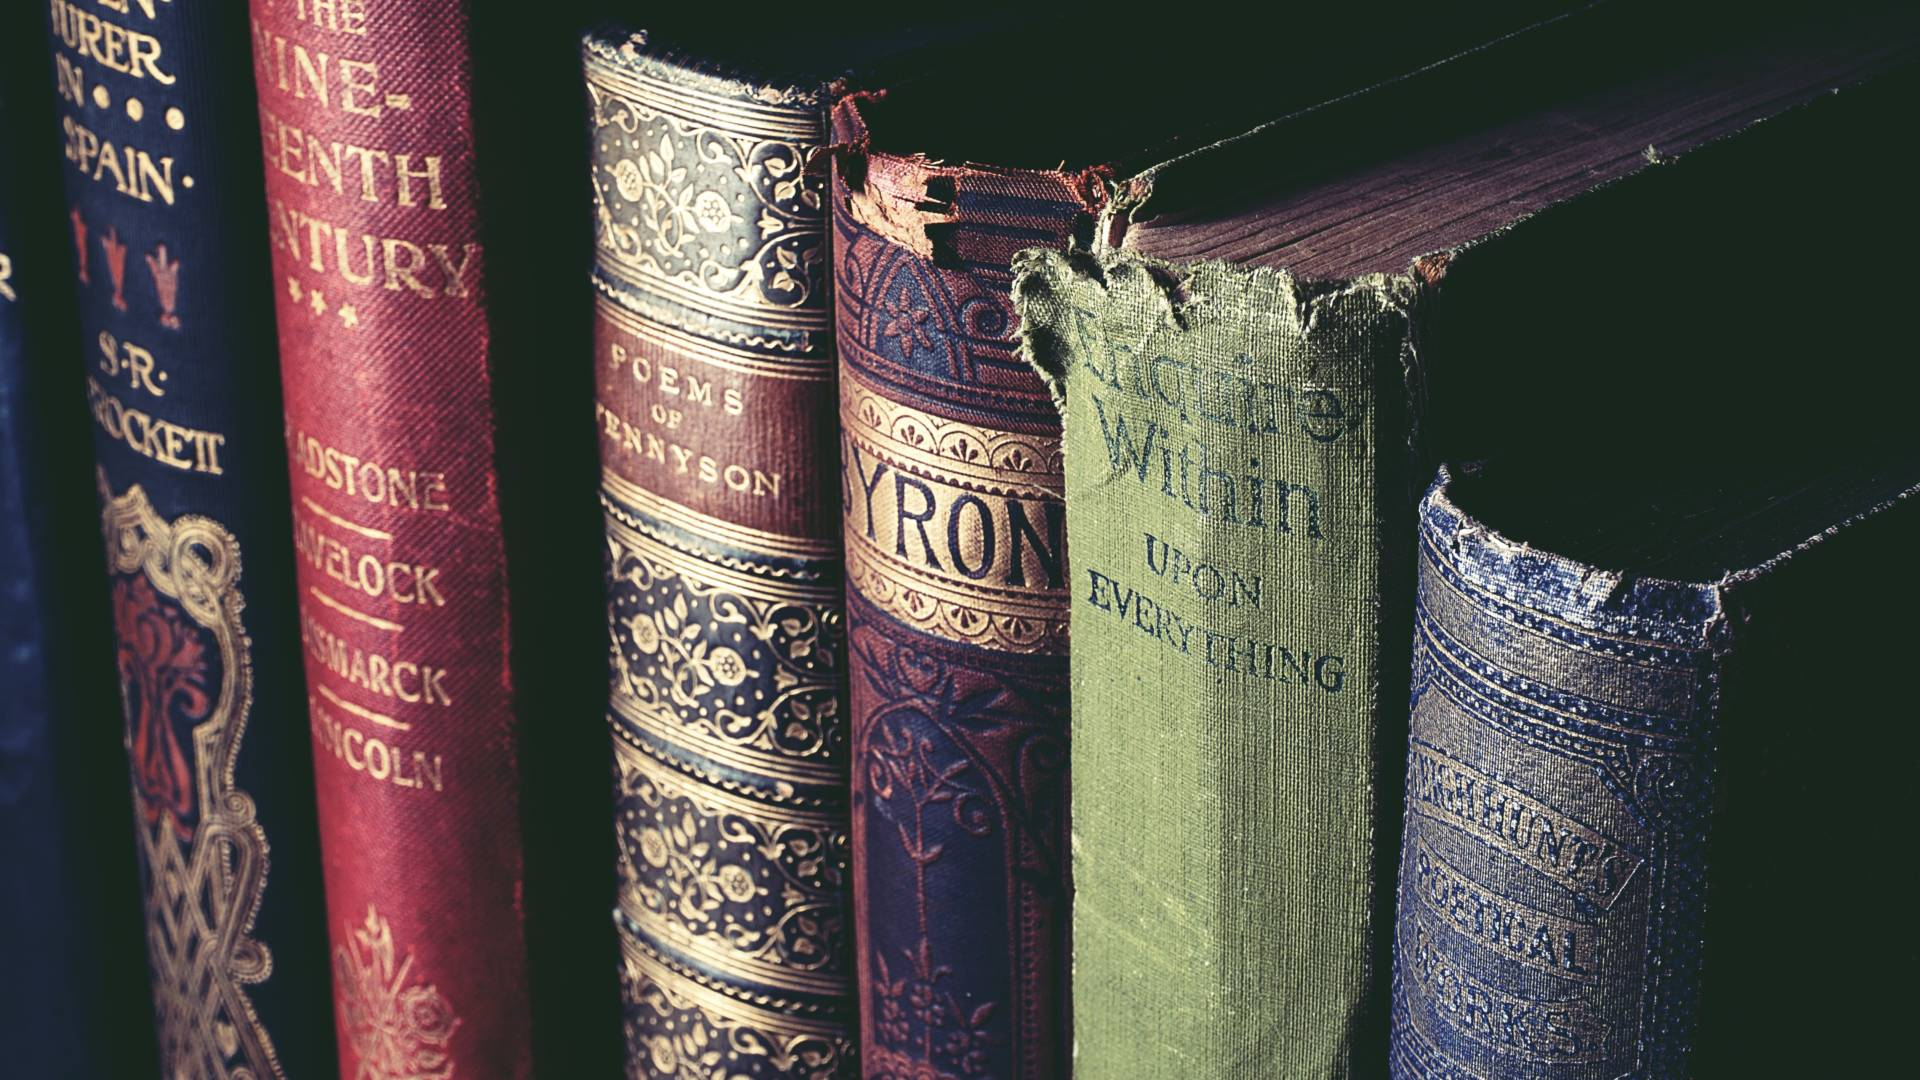 California's Antiquarian Book Fair is one of the largest festivals of its kind in the country. ia's Antiquarian Book Fair is one of the largest antique book festivals in the country.